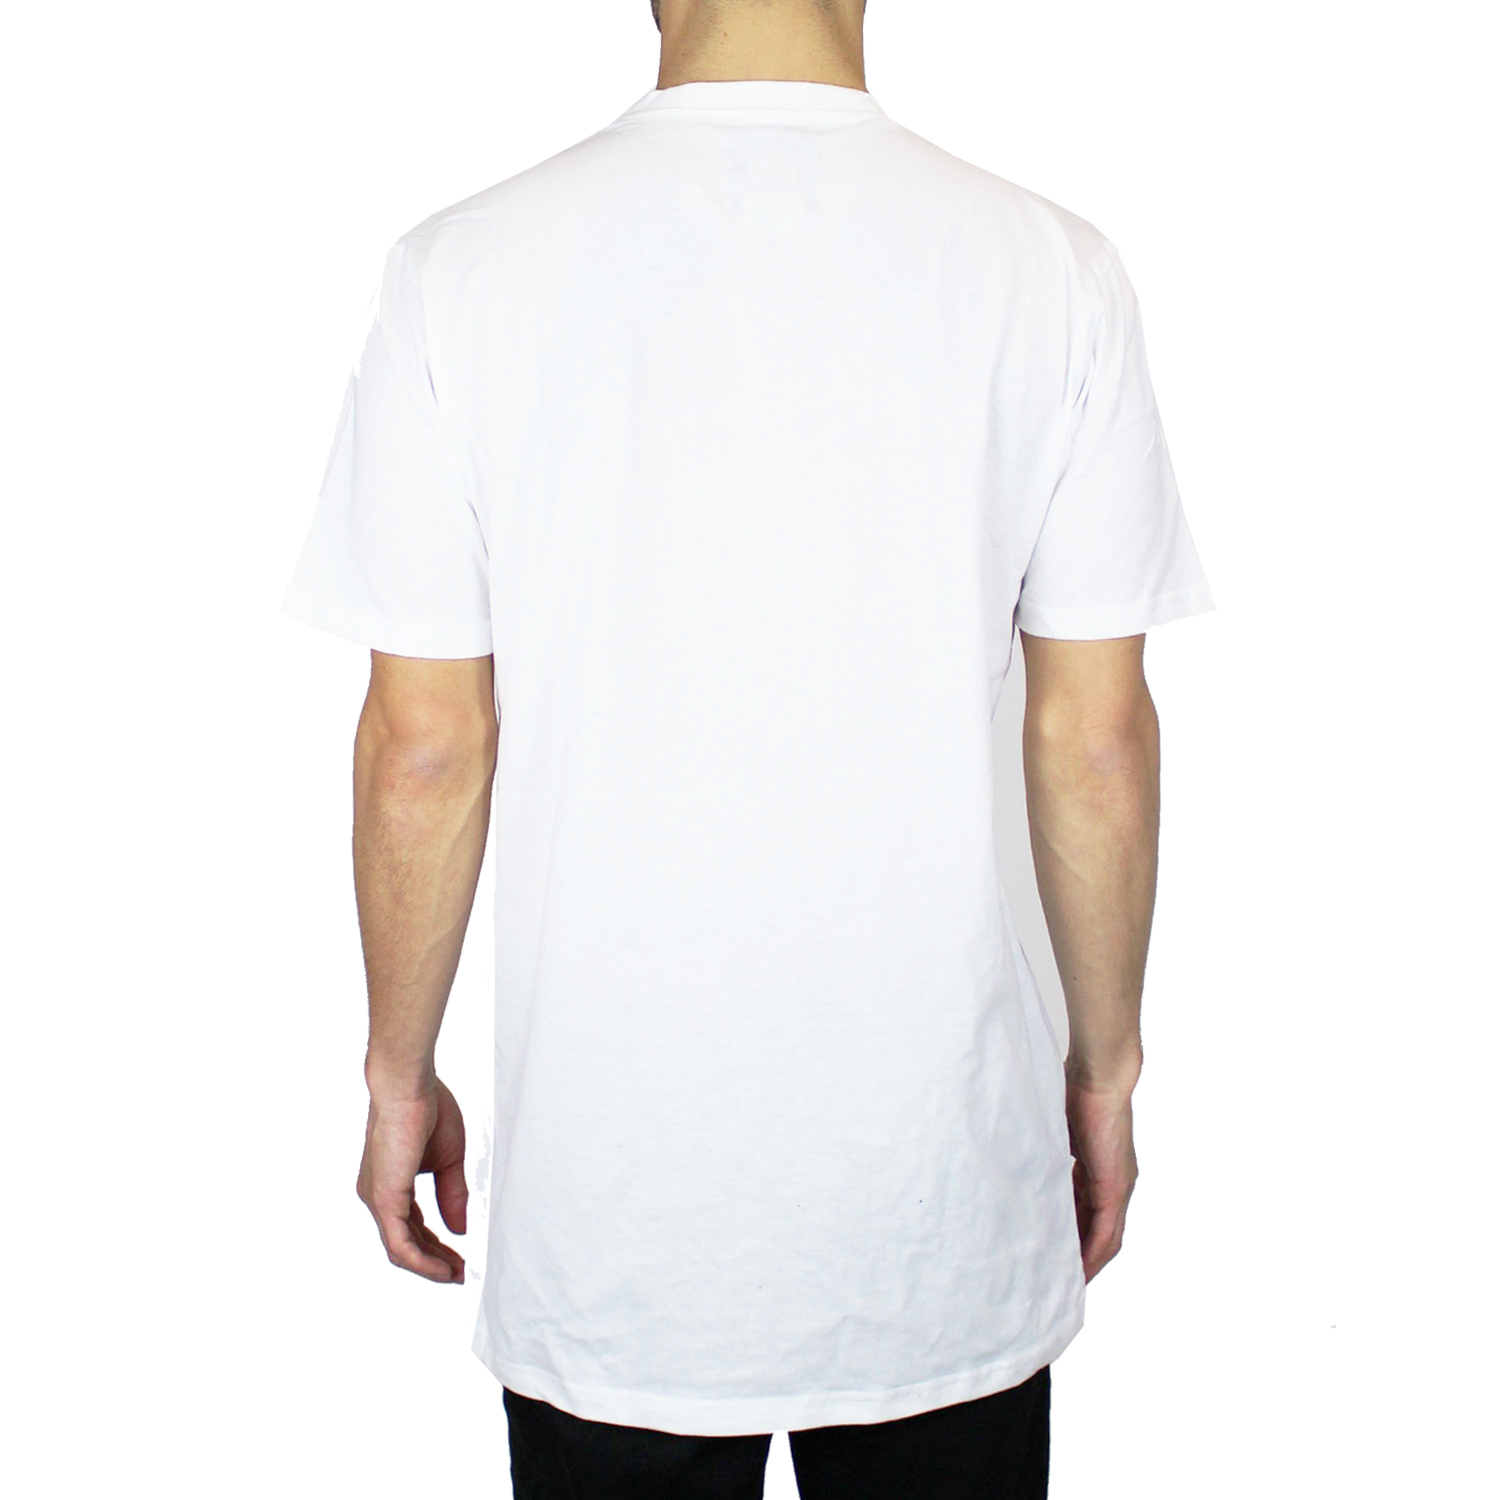 Men 39 s casual jacquard pocket t shirt crew neck short for Crew neck white t shirt